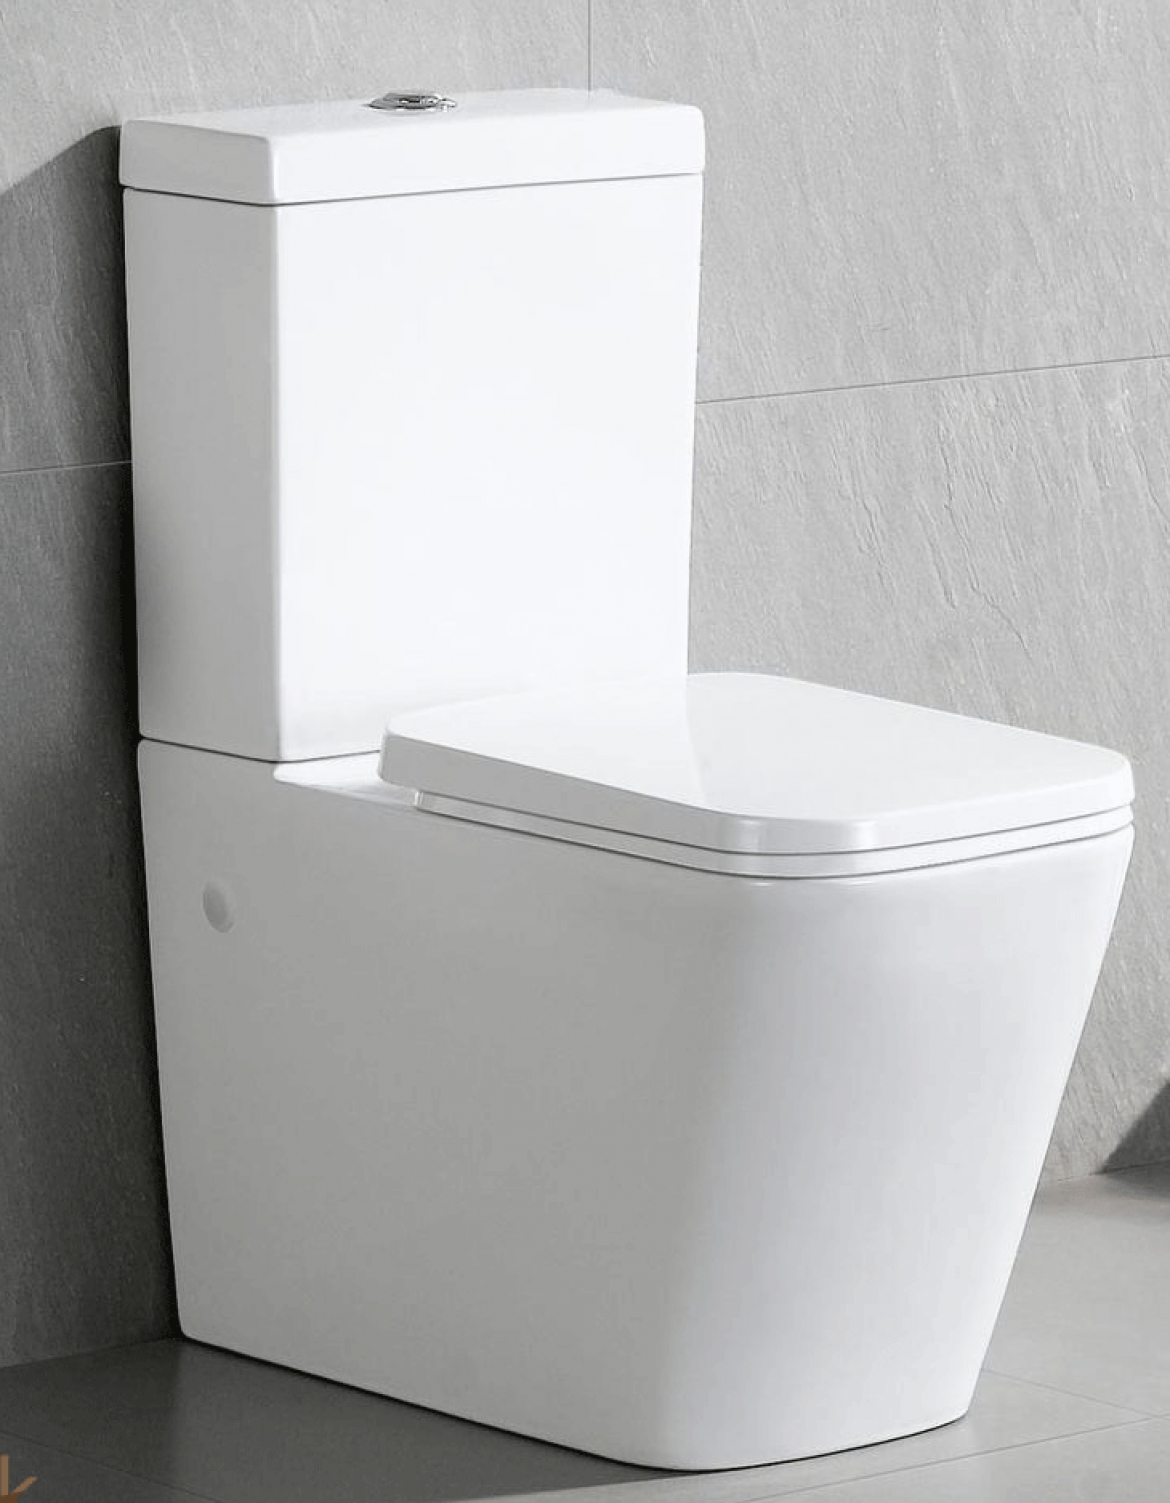 Bathroom Ceramic Square Toilet suite [003]